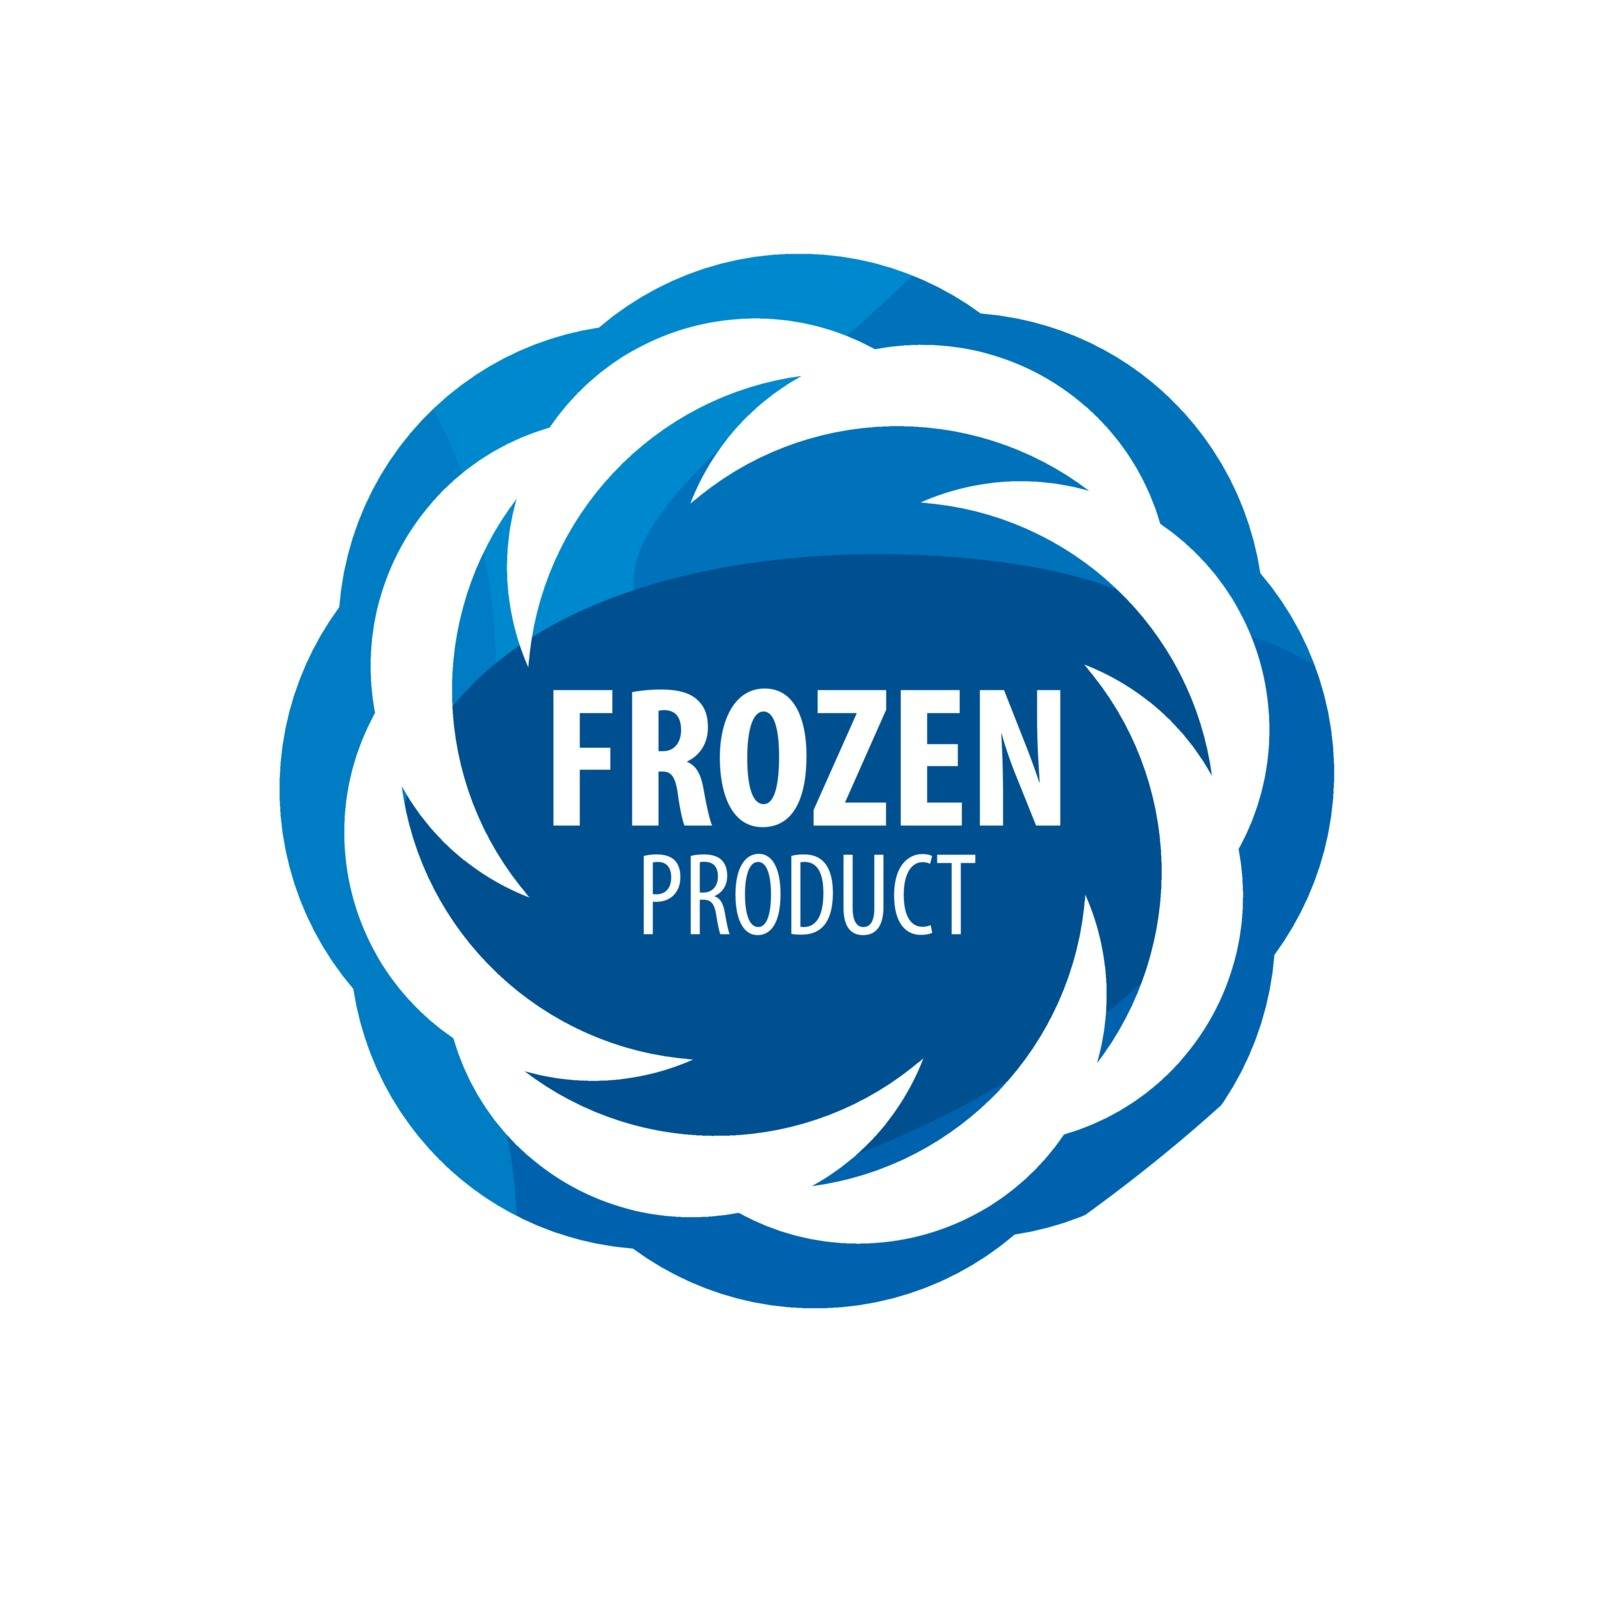 Abstract vector logo for frozen products. Design element